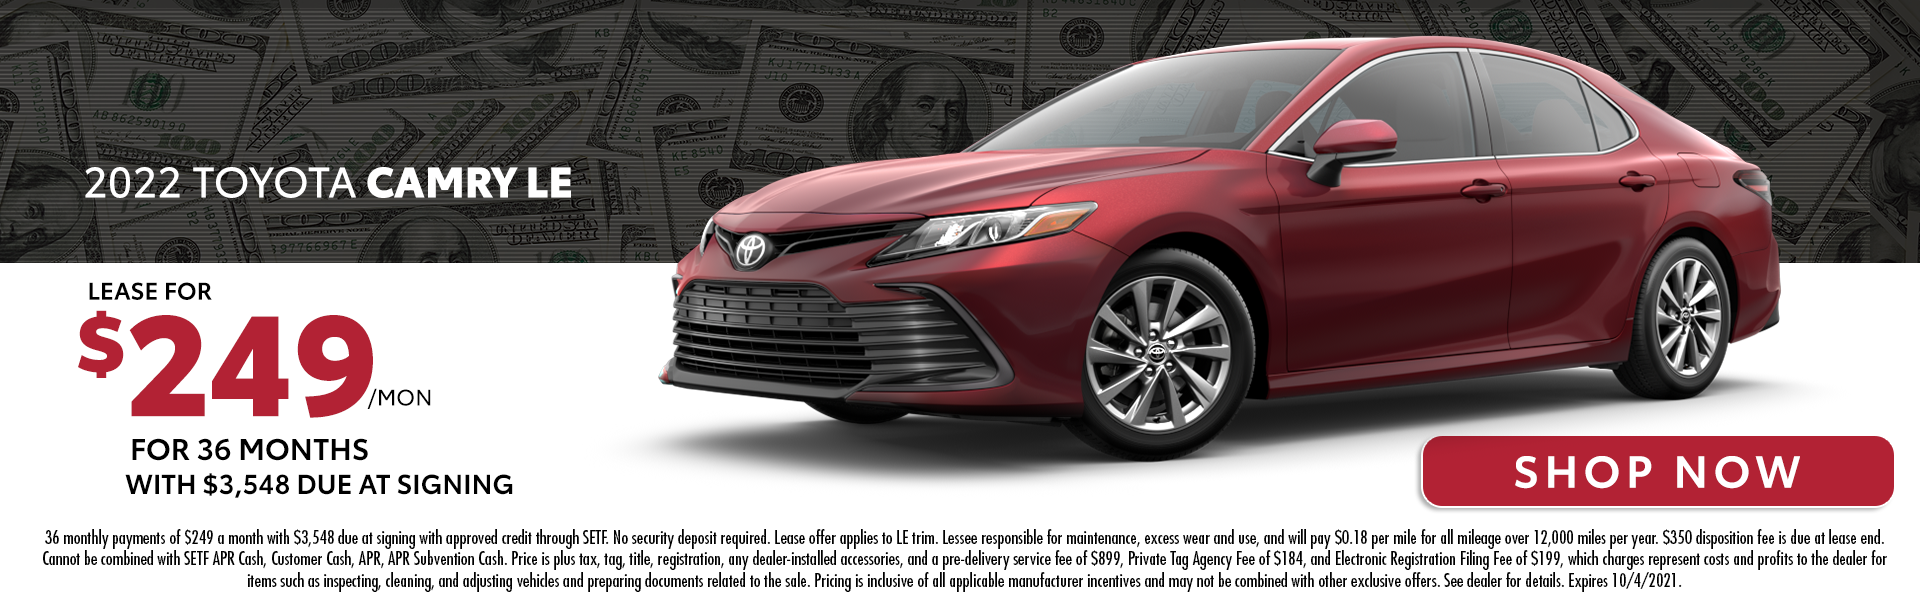 2022 Toyota Camry LE | Lease For $249/Month for 36 Months with $3,548 Due At Signing